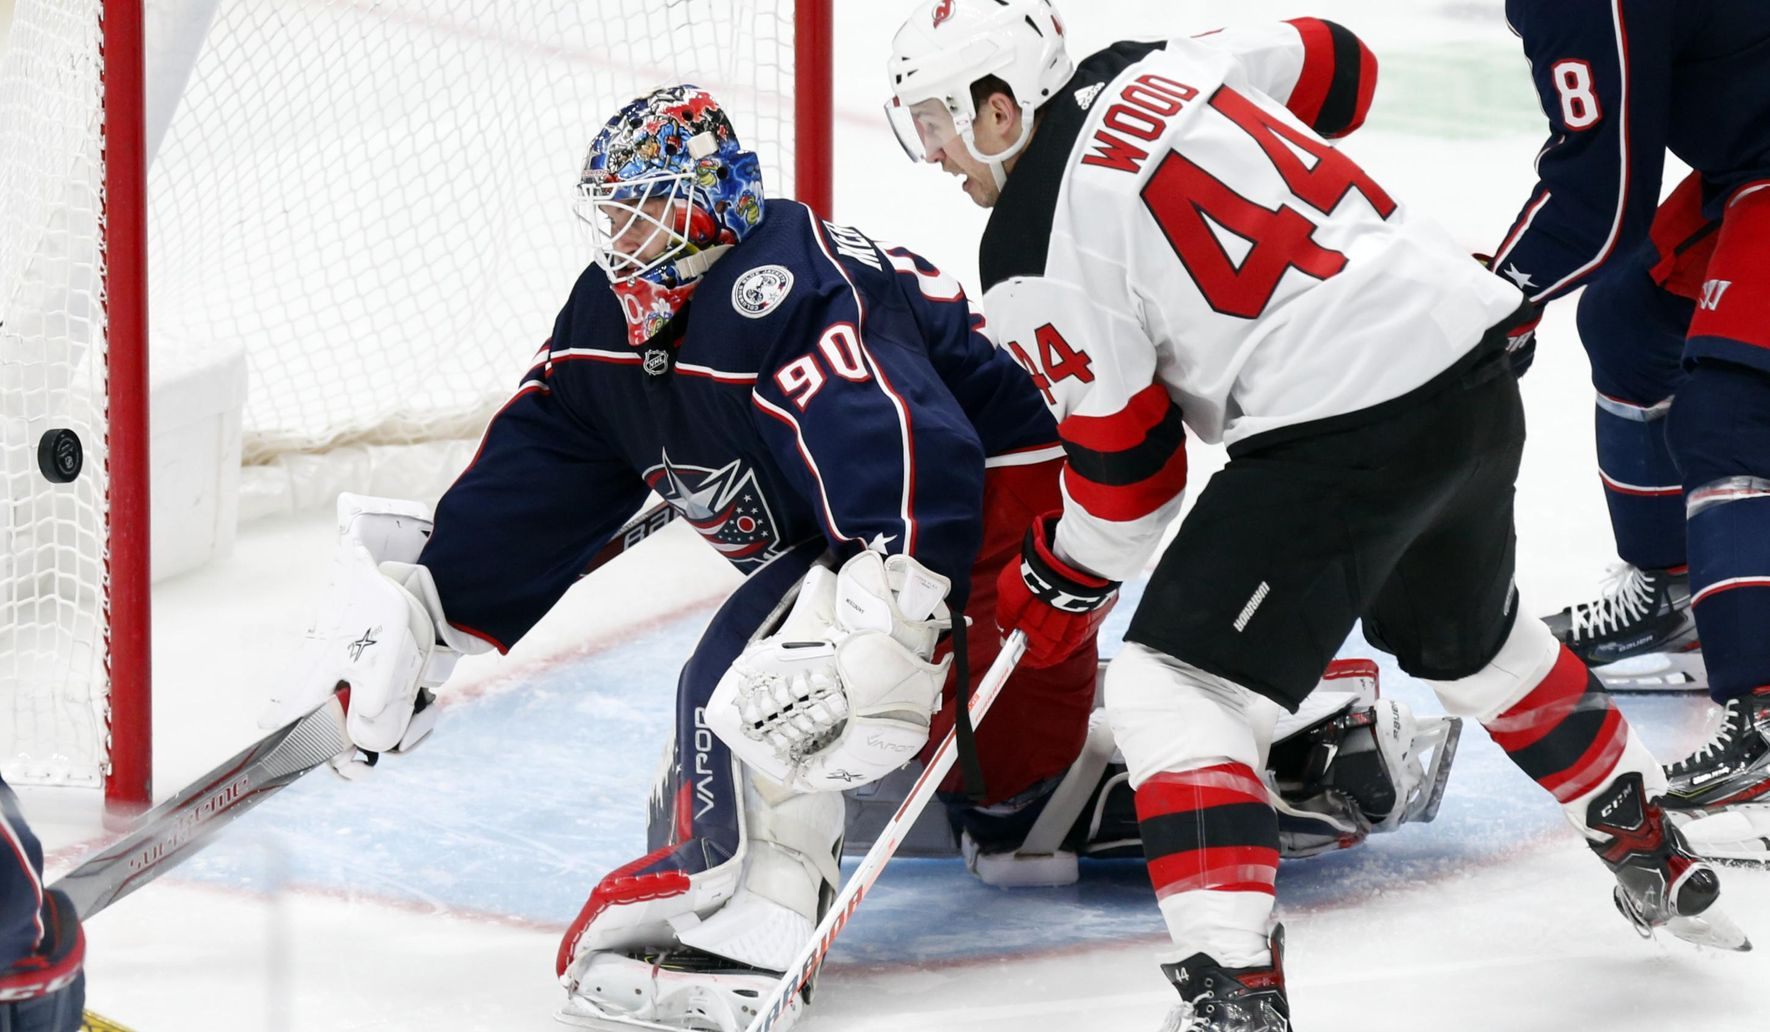 Devils_blue_jackets_hockey_57916_c0-213-2899-1903_s1770x1032